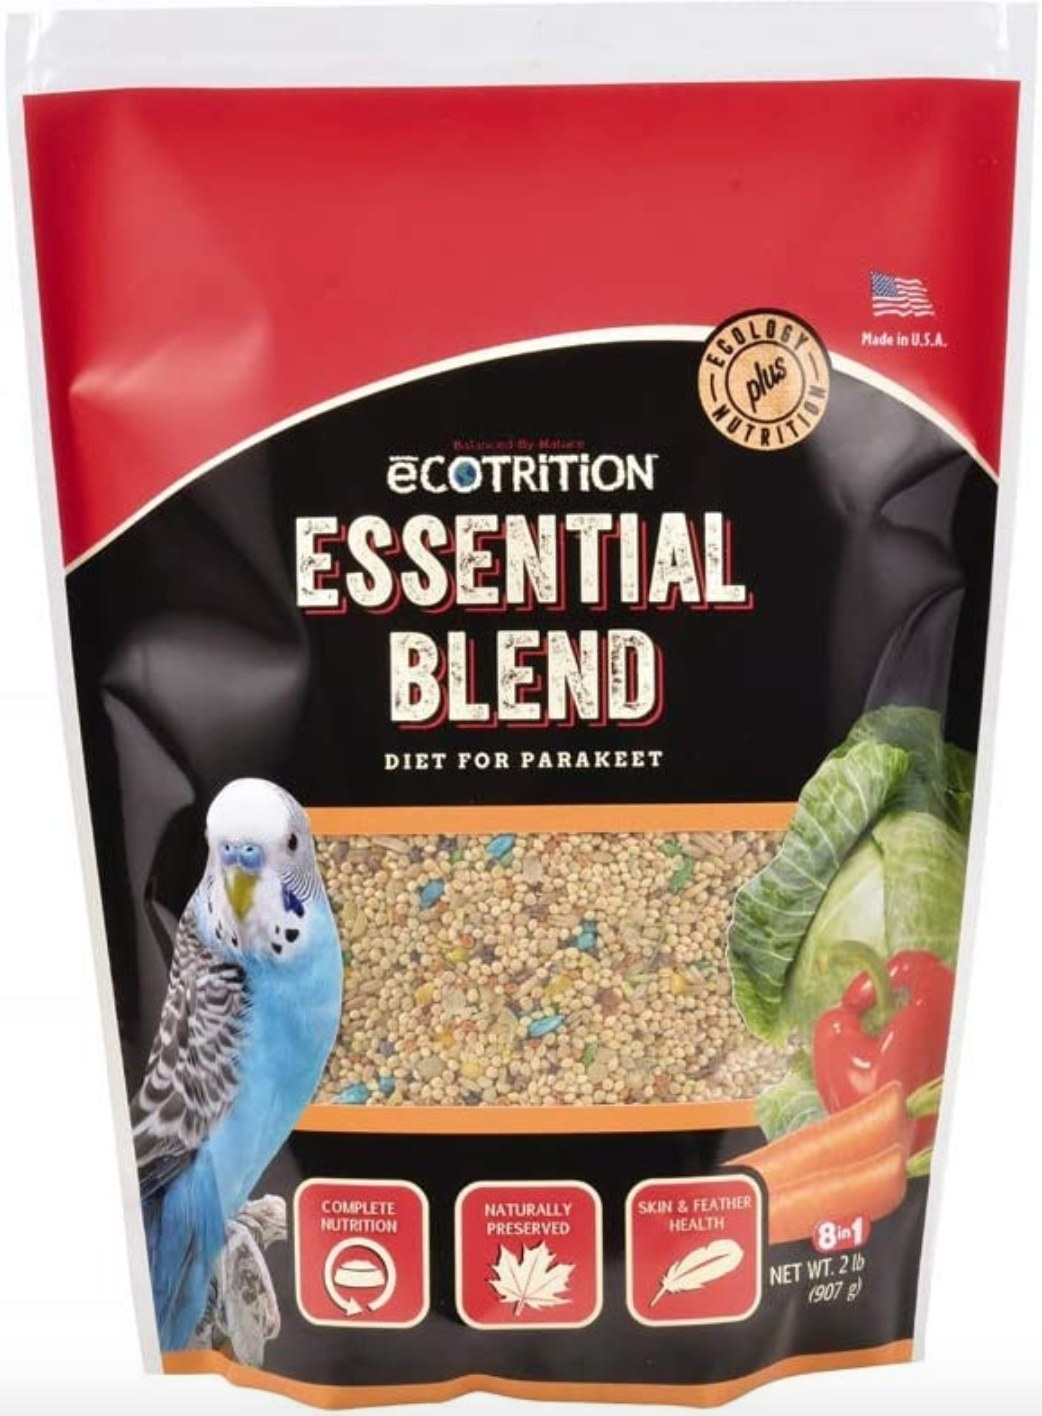 The two-pound bag of essential bird feed in a red package